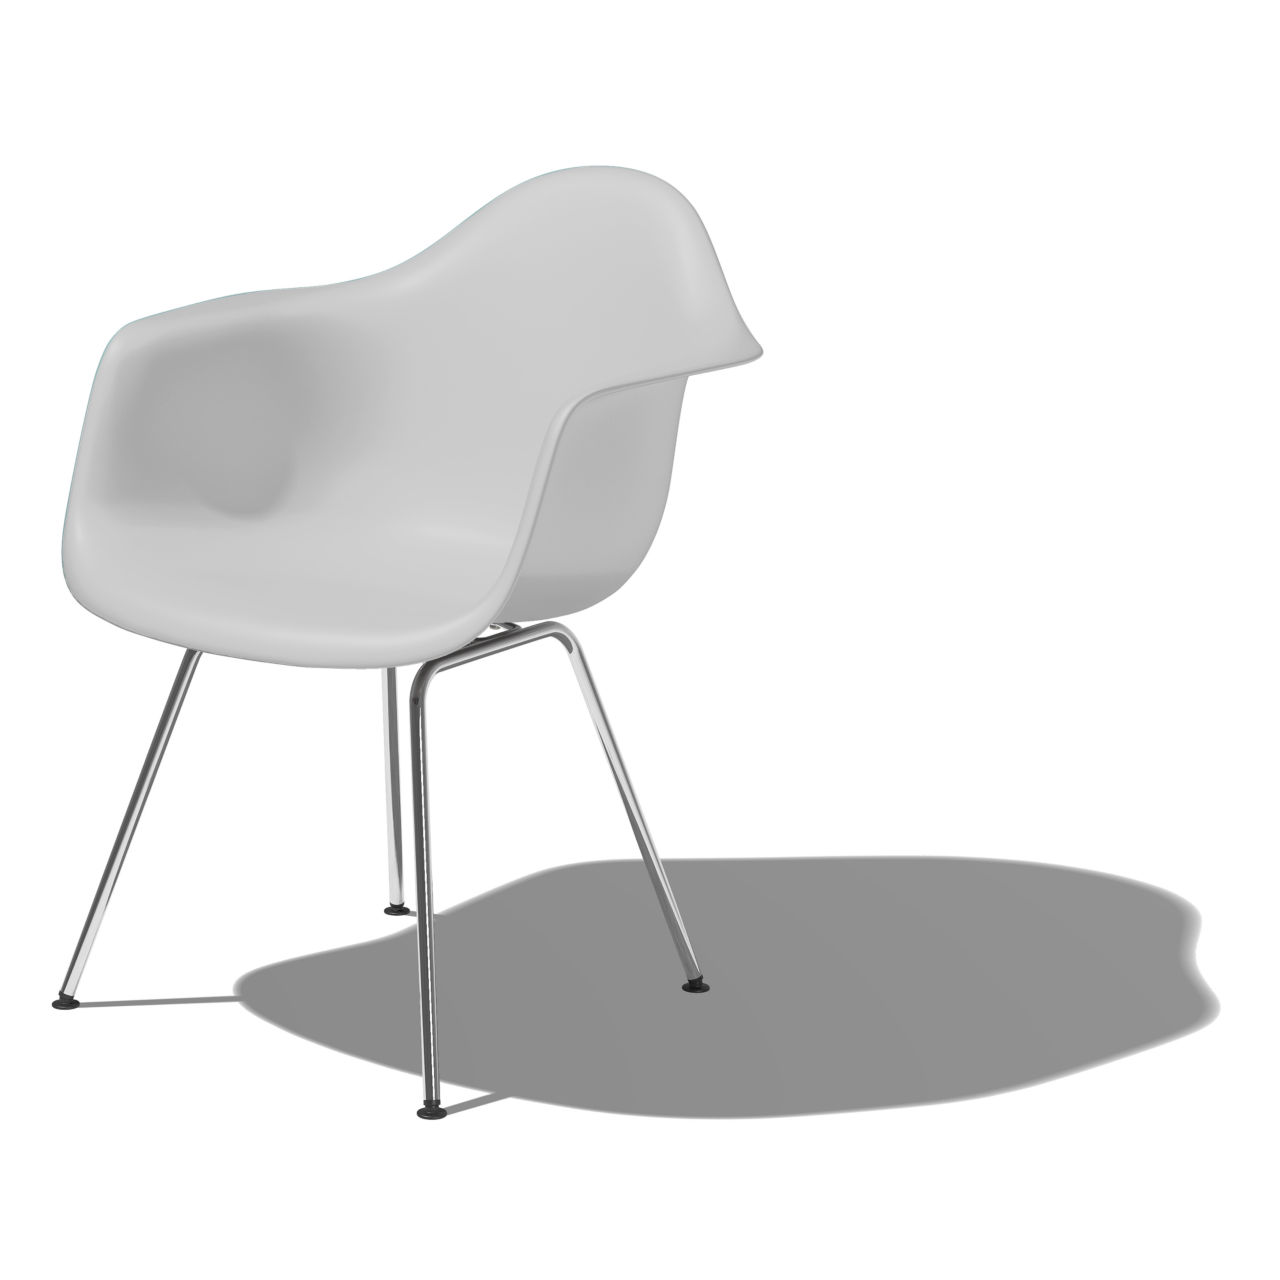 Eames Molded Plastic Armchair with 4 Leg Base in Alpine by Herman Miller